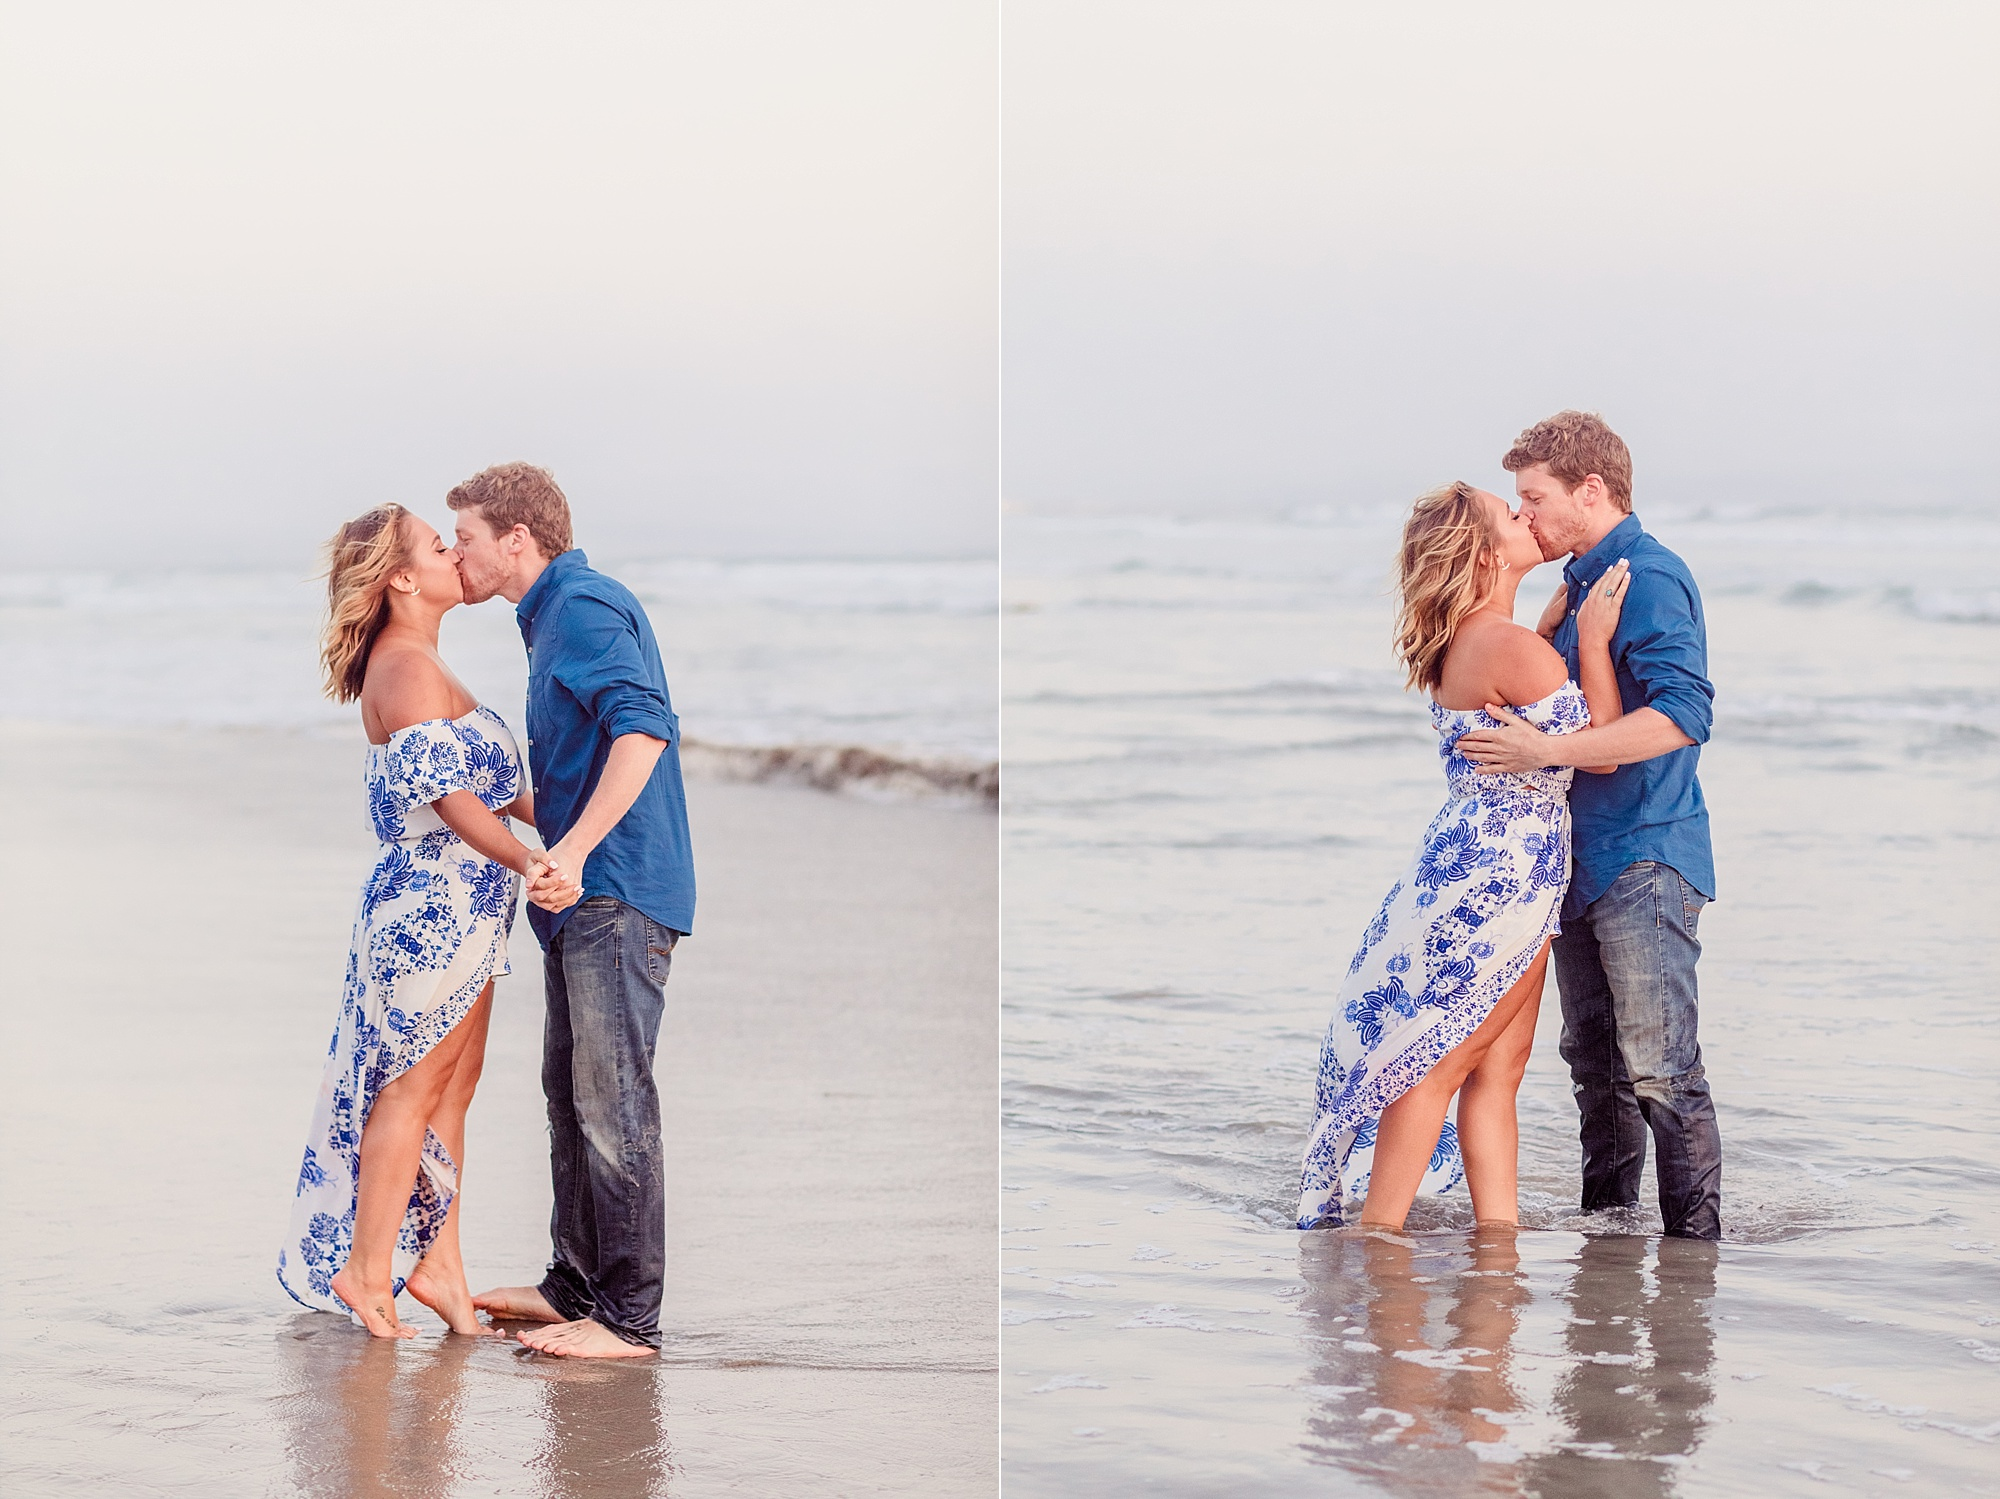 San Diego Family Photographer | Kissing